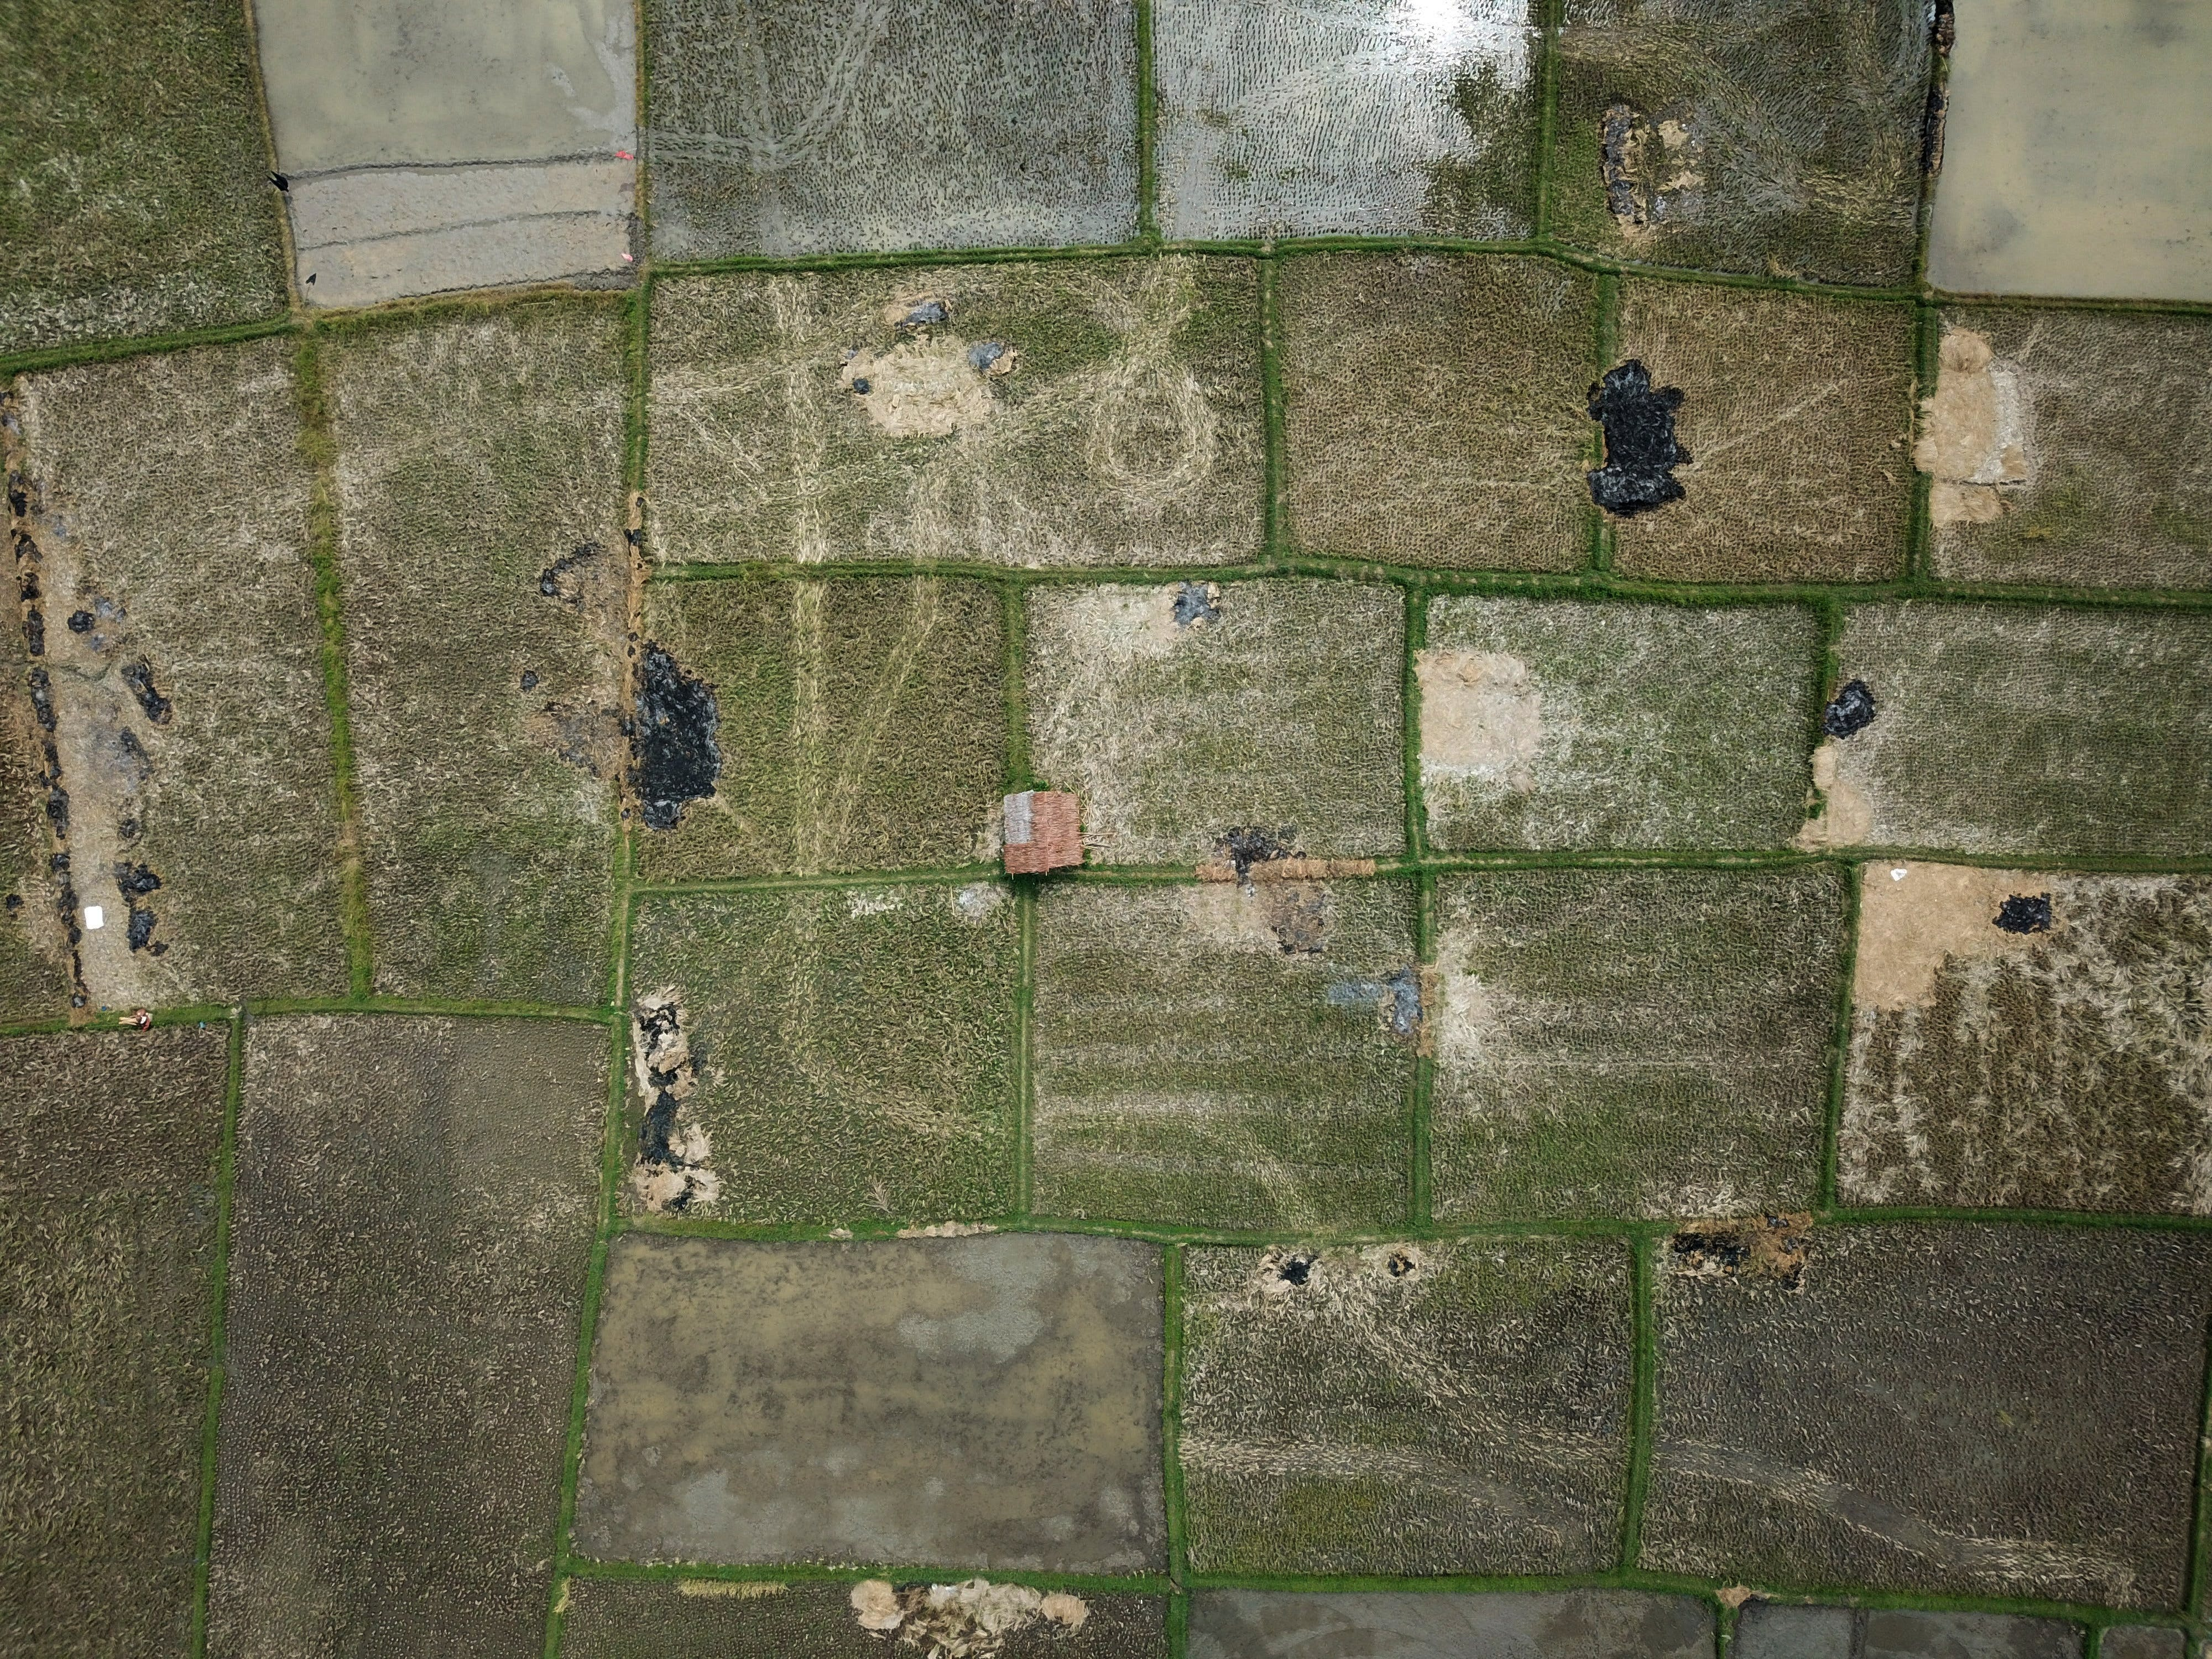 Aerial Photography of Green Grass Field